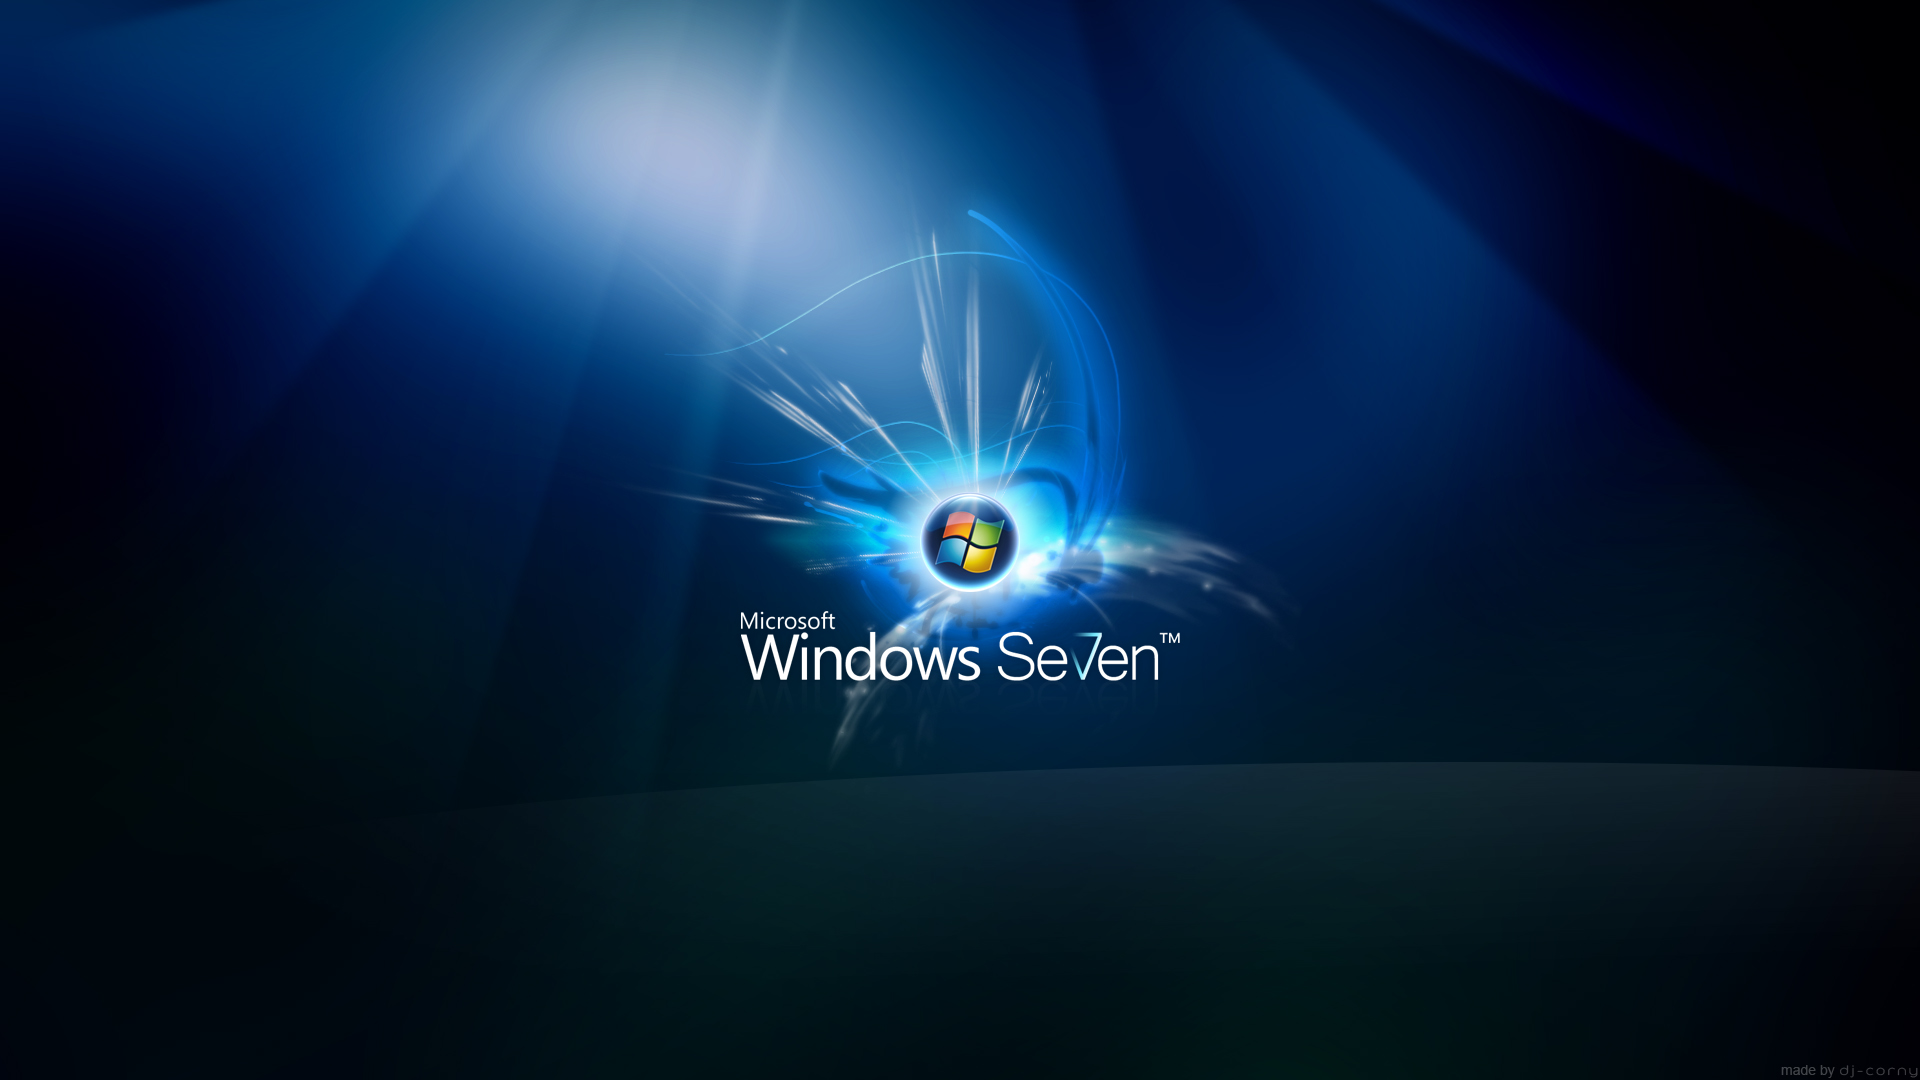 37 high definition windows 7 wallpapers backgrounds for free download